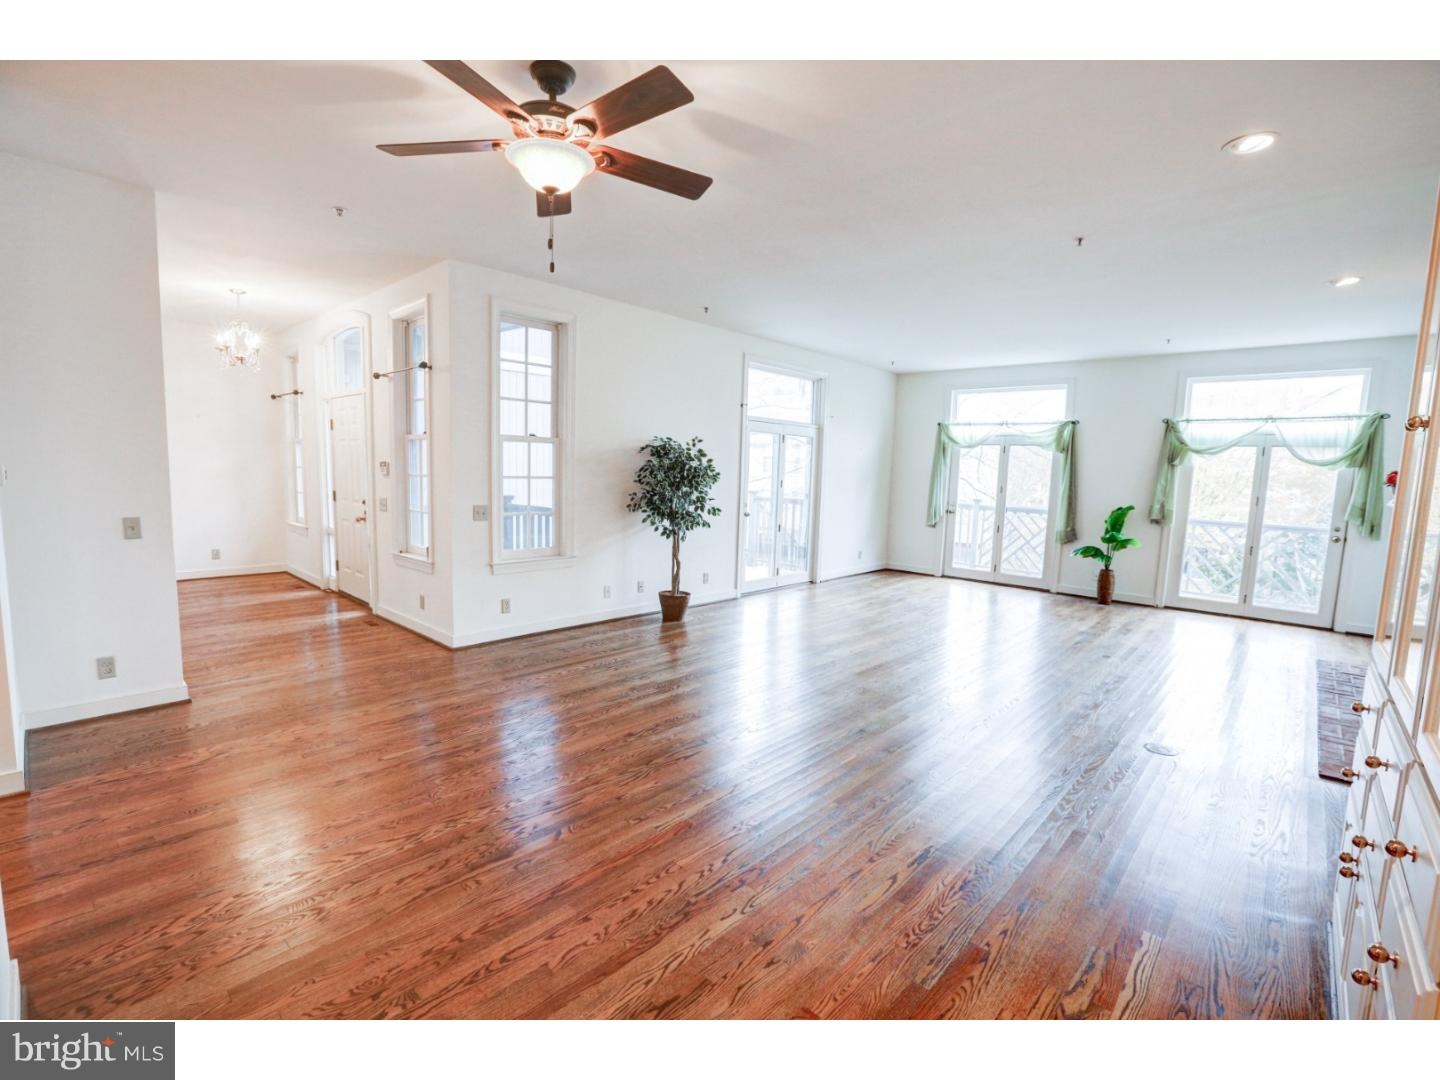 Single Family Home for Sale at Rockland, Delaware 19732 United States